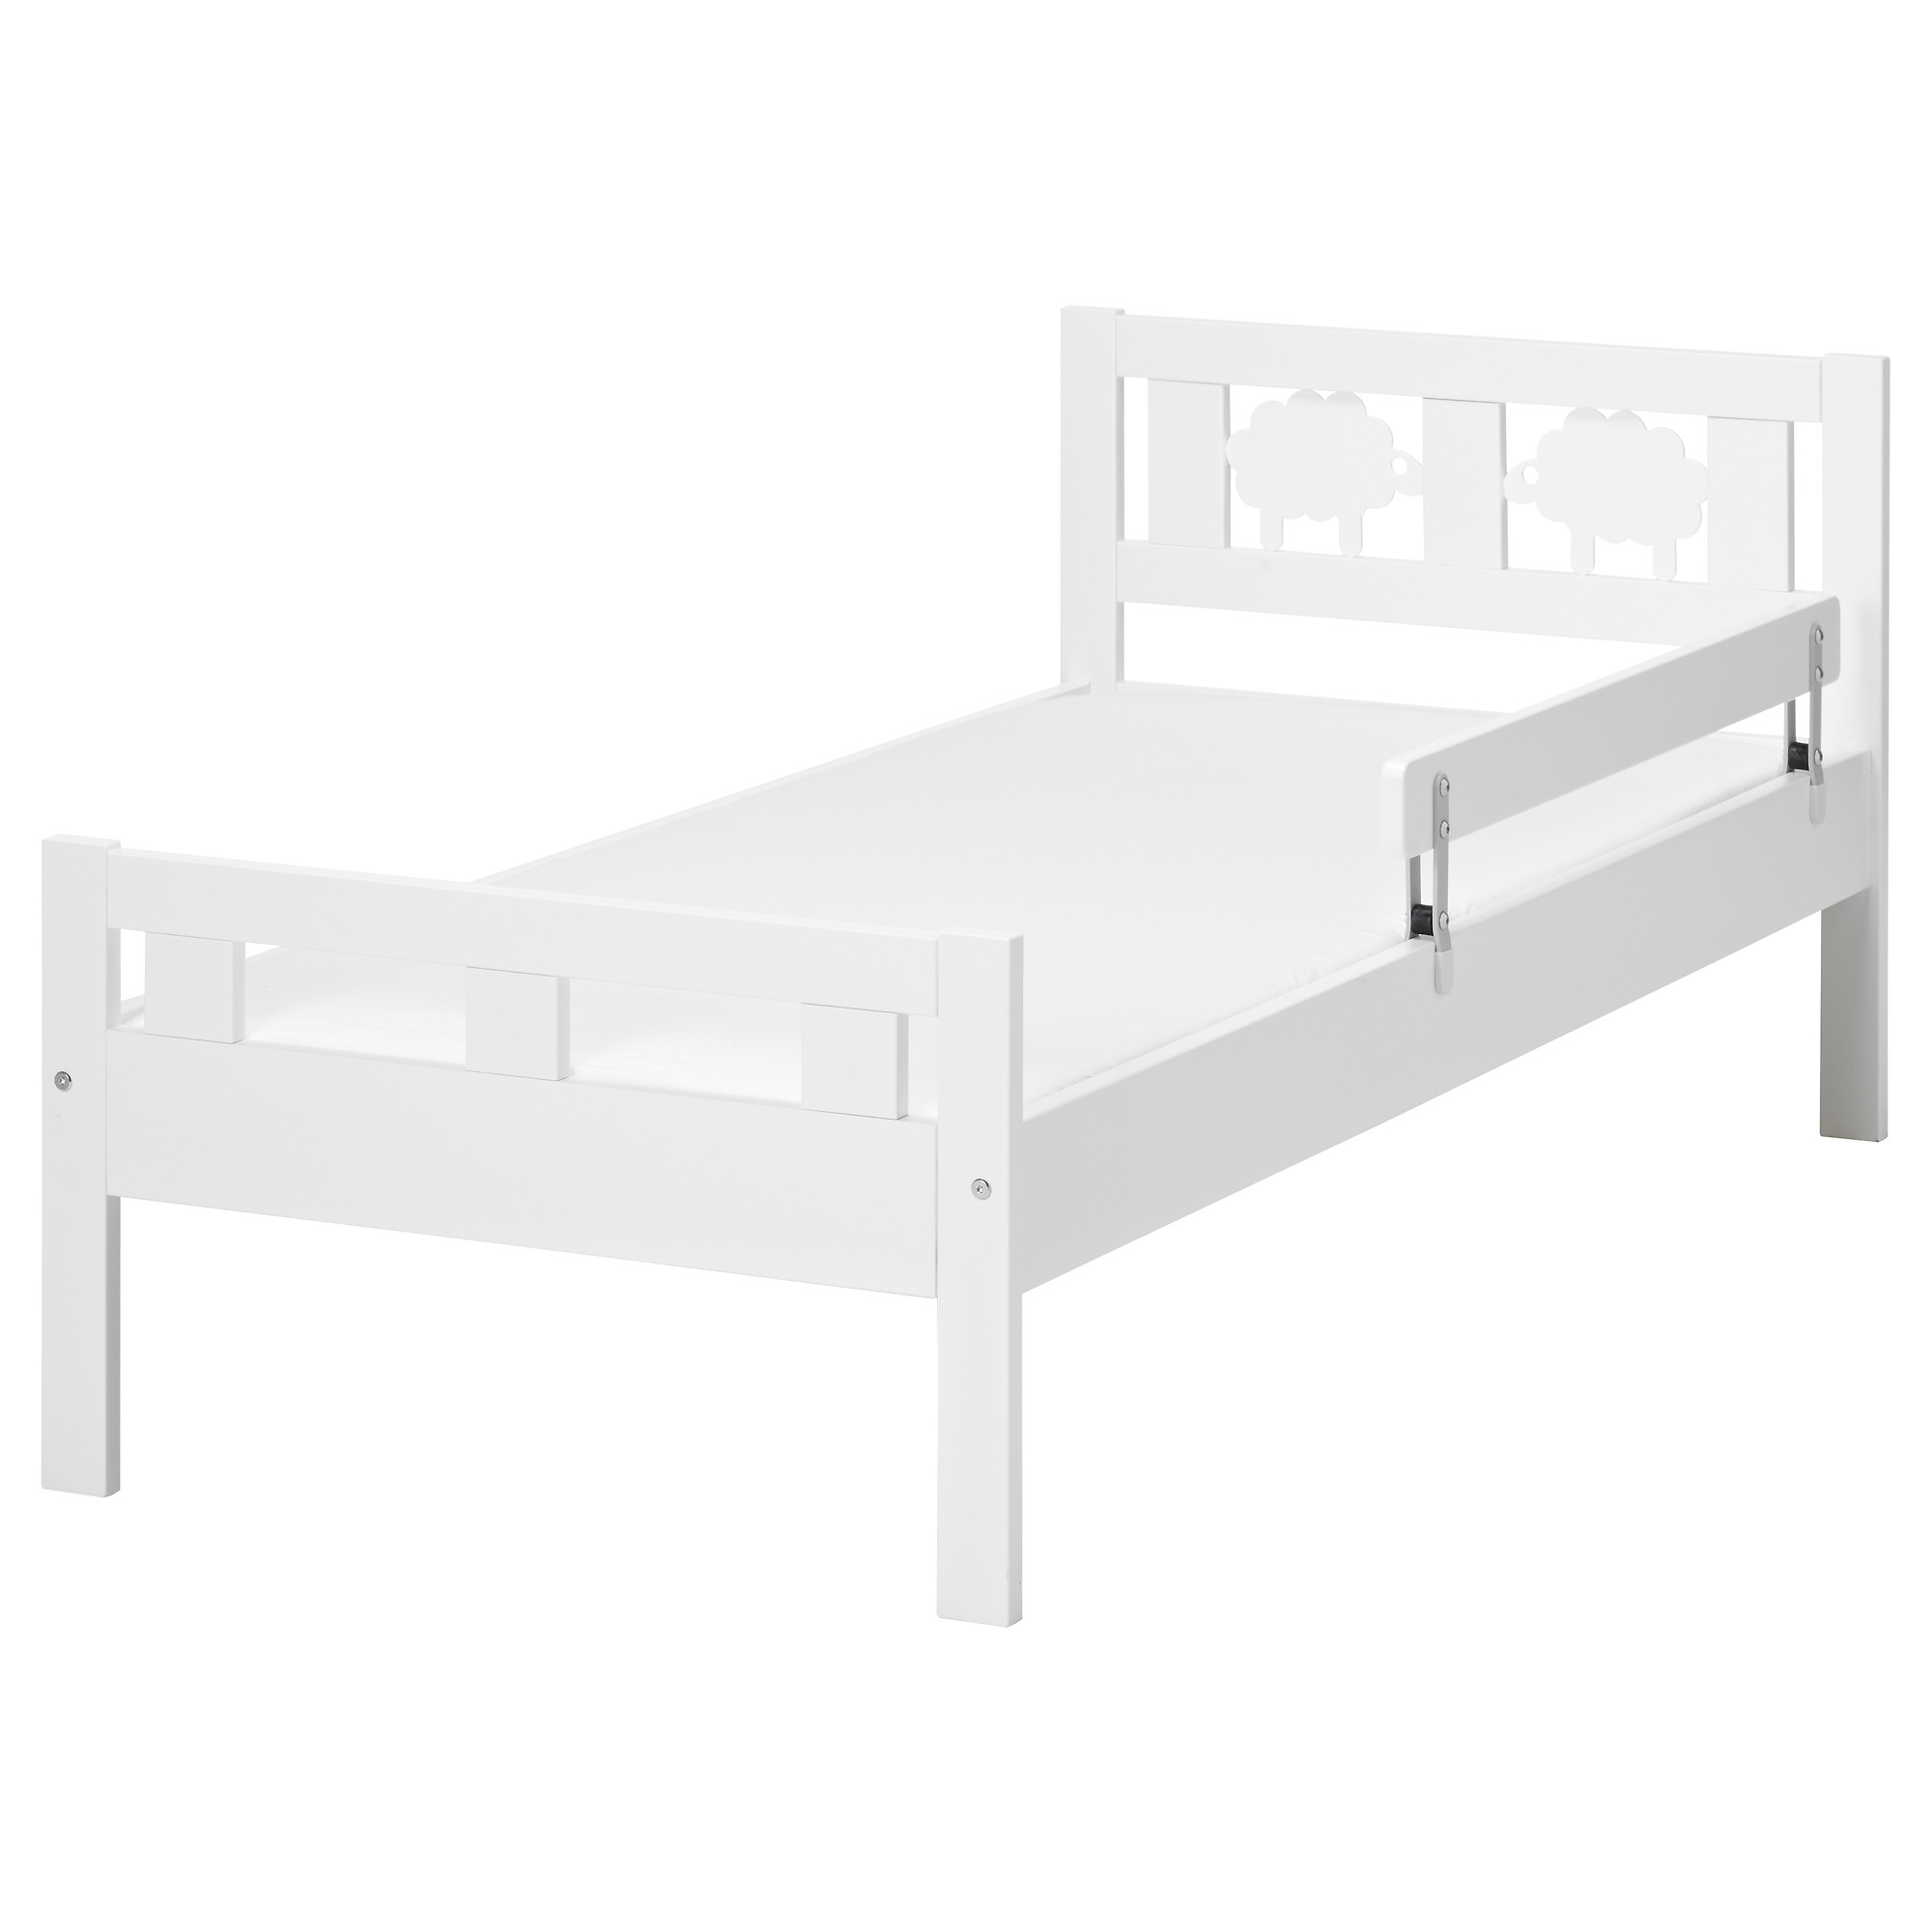 Ikea Poang Chair How To Assemble ~ KRITTER Estructura cama y barandilla blanco